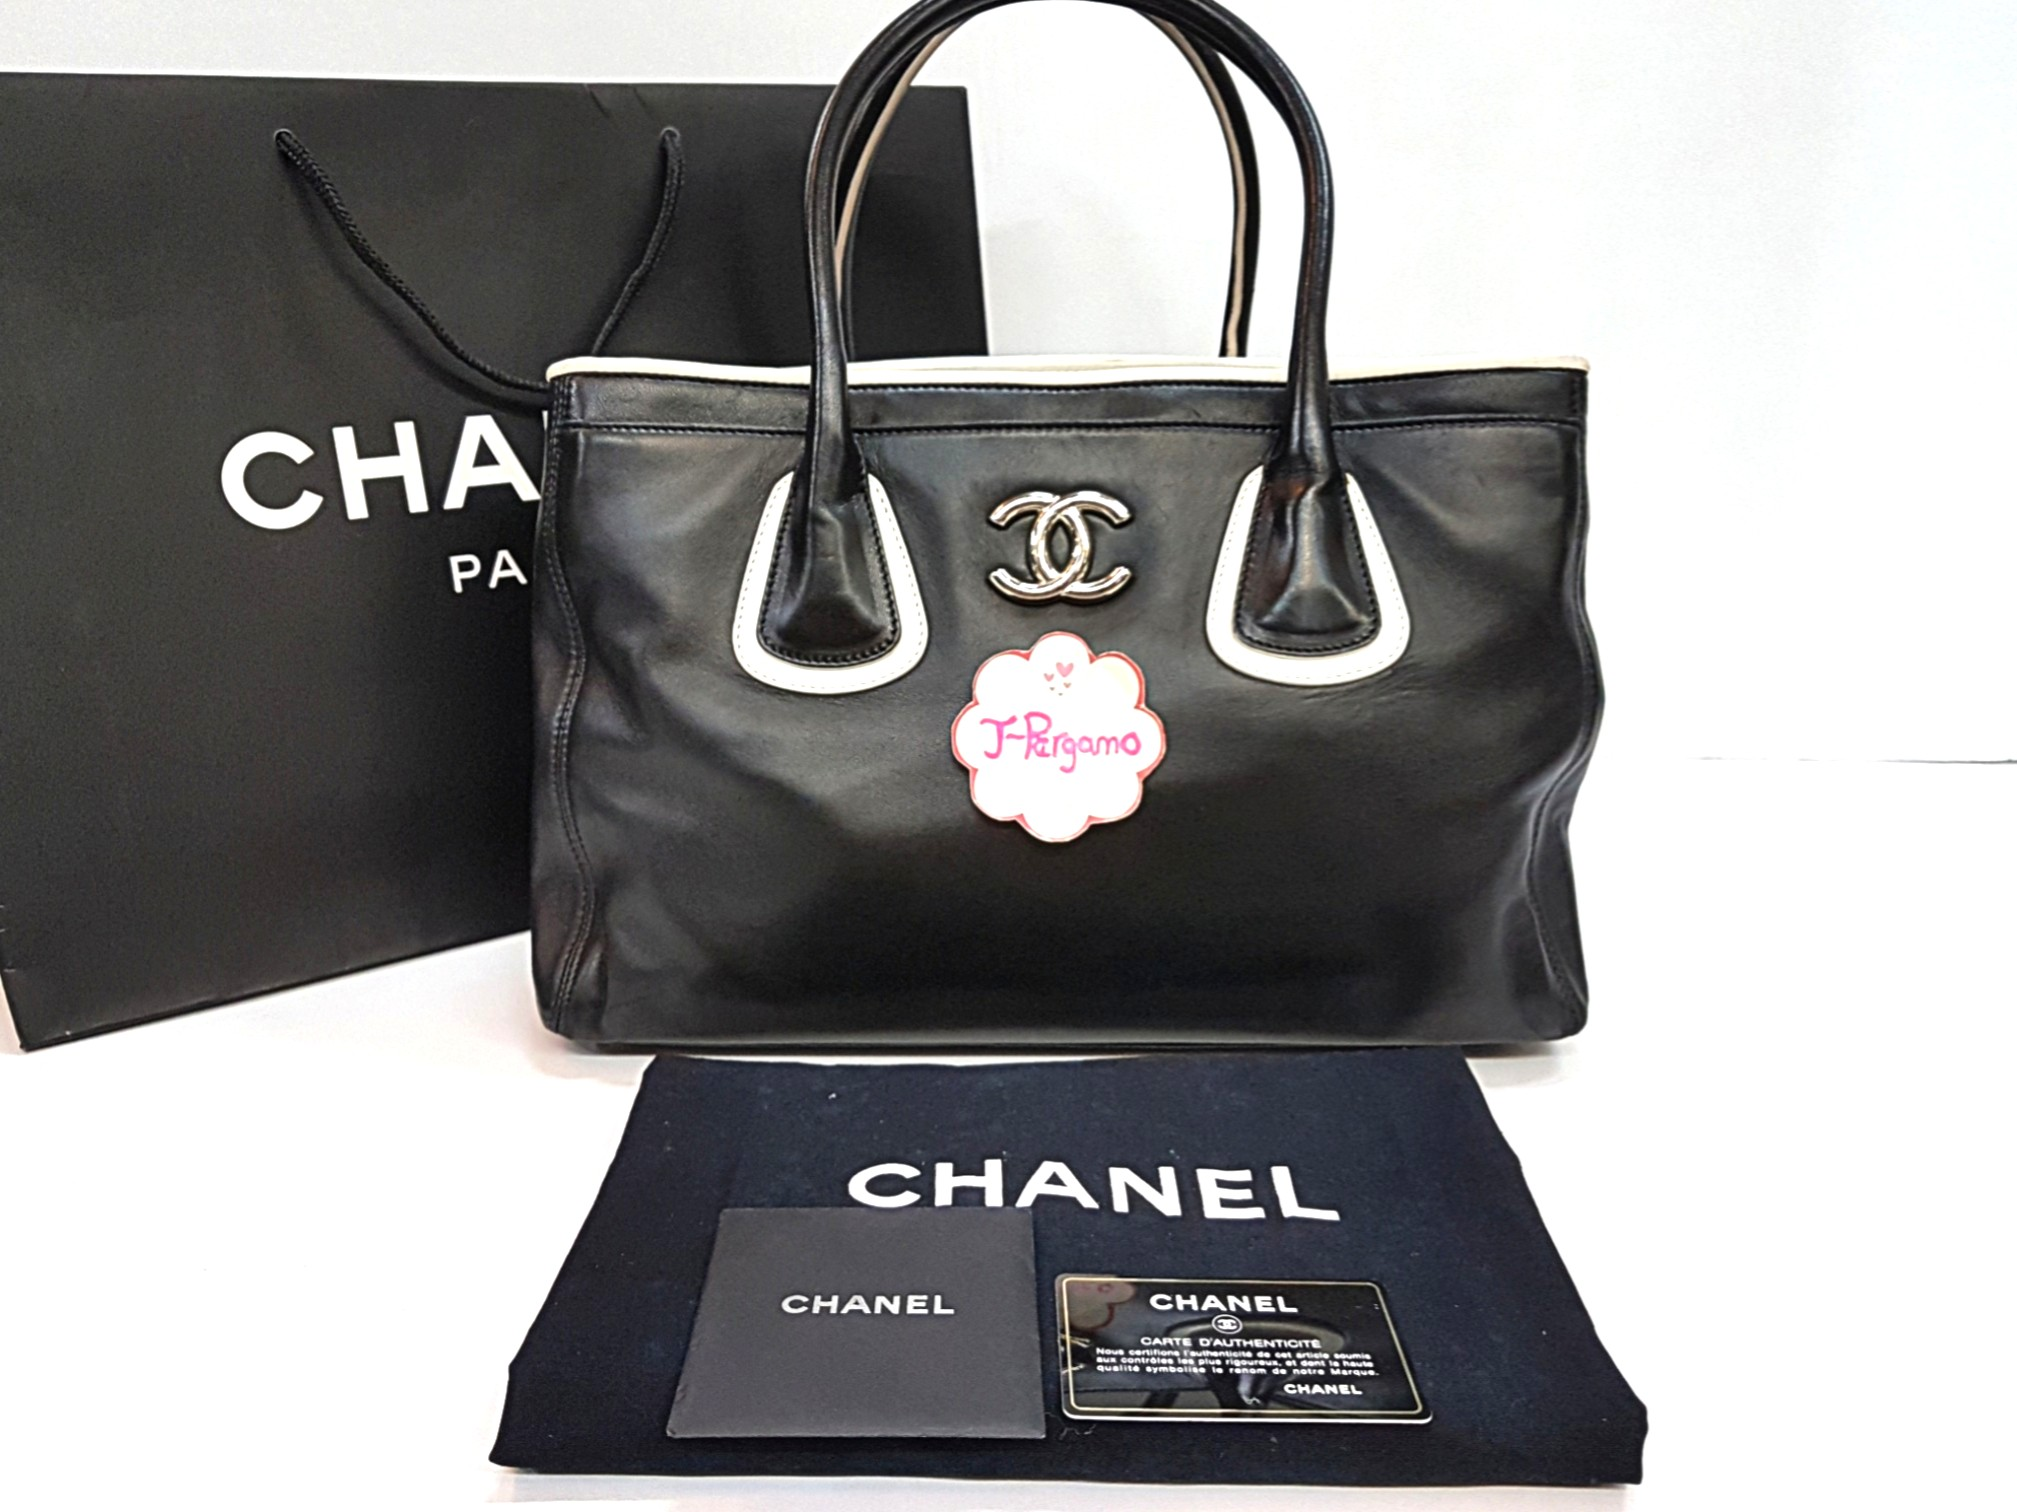 820b56d0ca Authentic Chanel Lambskin Large Executive Cert Tote Bag SHW {{ Only For  Sale }} ** No Trade ** {{ Fixed Price Non-Neg }} ** 定价 **, Luxury, Bags &  Wallets, ...